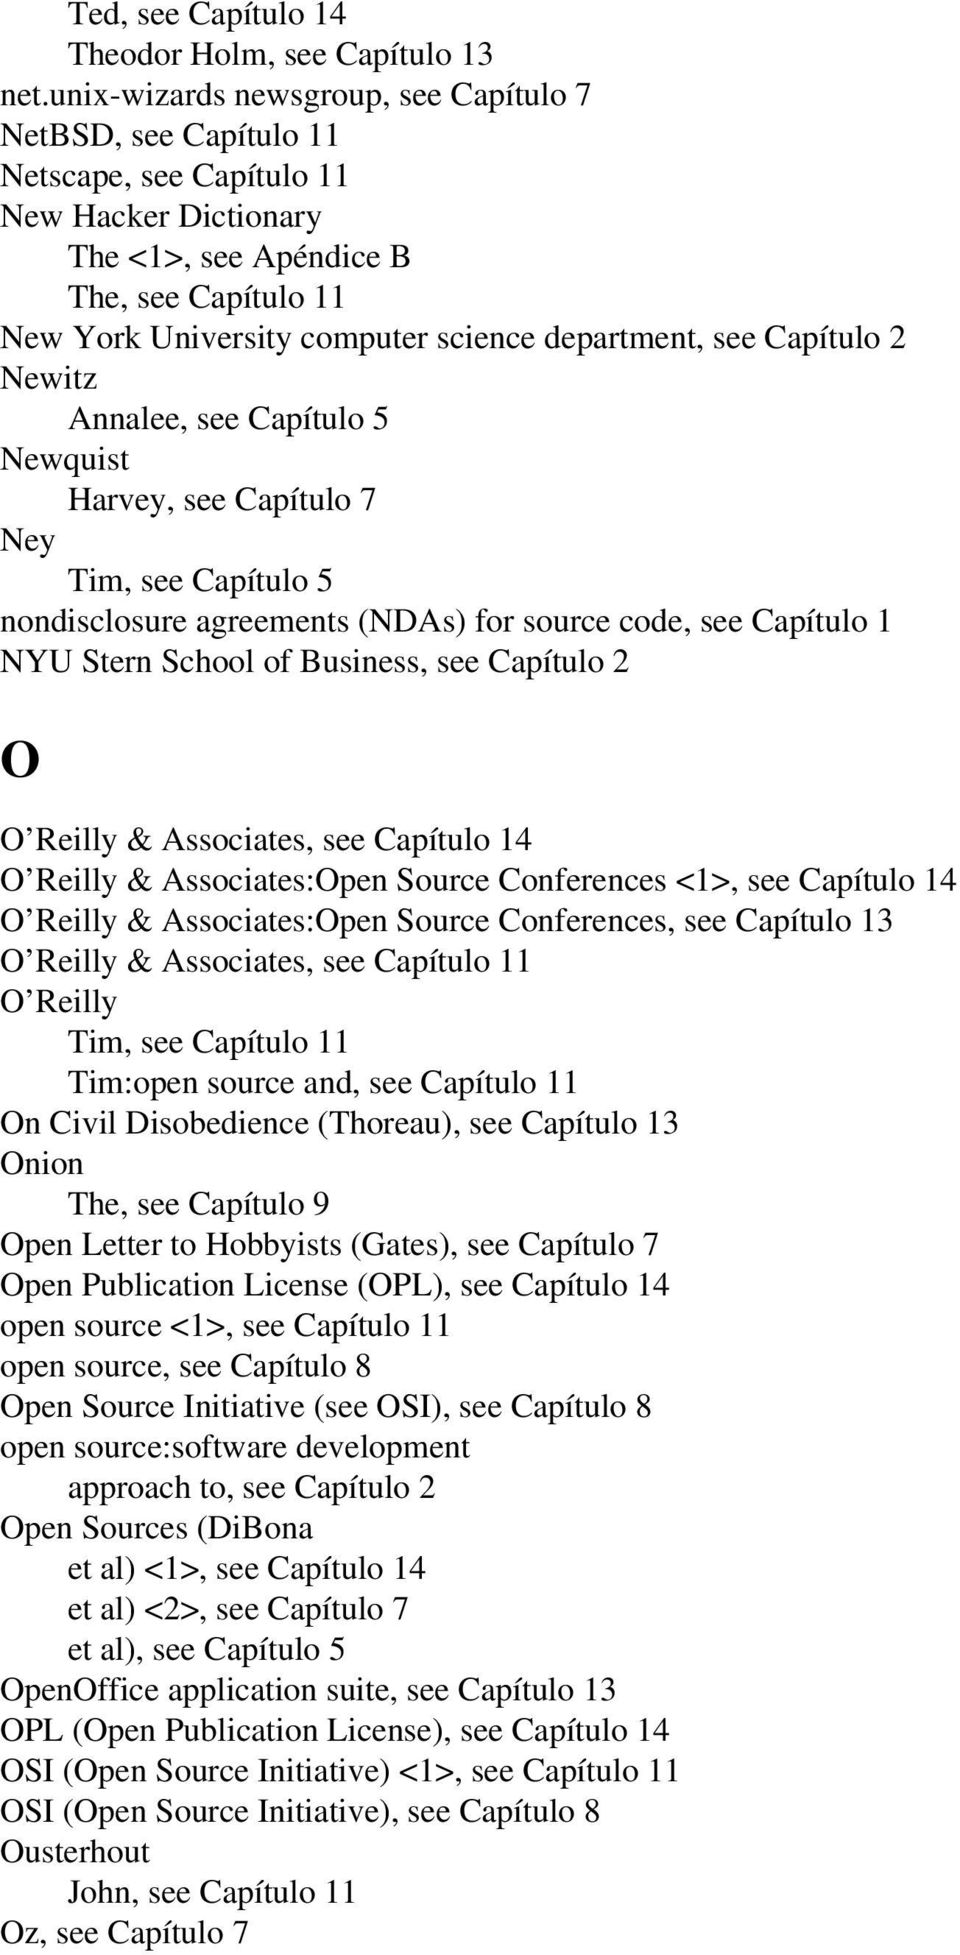 department, see Capítulo 2 Newitz Annalee, see Capítulo 5 Newquist Harvey, see Capítulo 7 Ney Tim, see Capítulo 5 nondisclosure agreements (NDAs) for source code, see Capítulo 1 NYU Stern School of